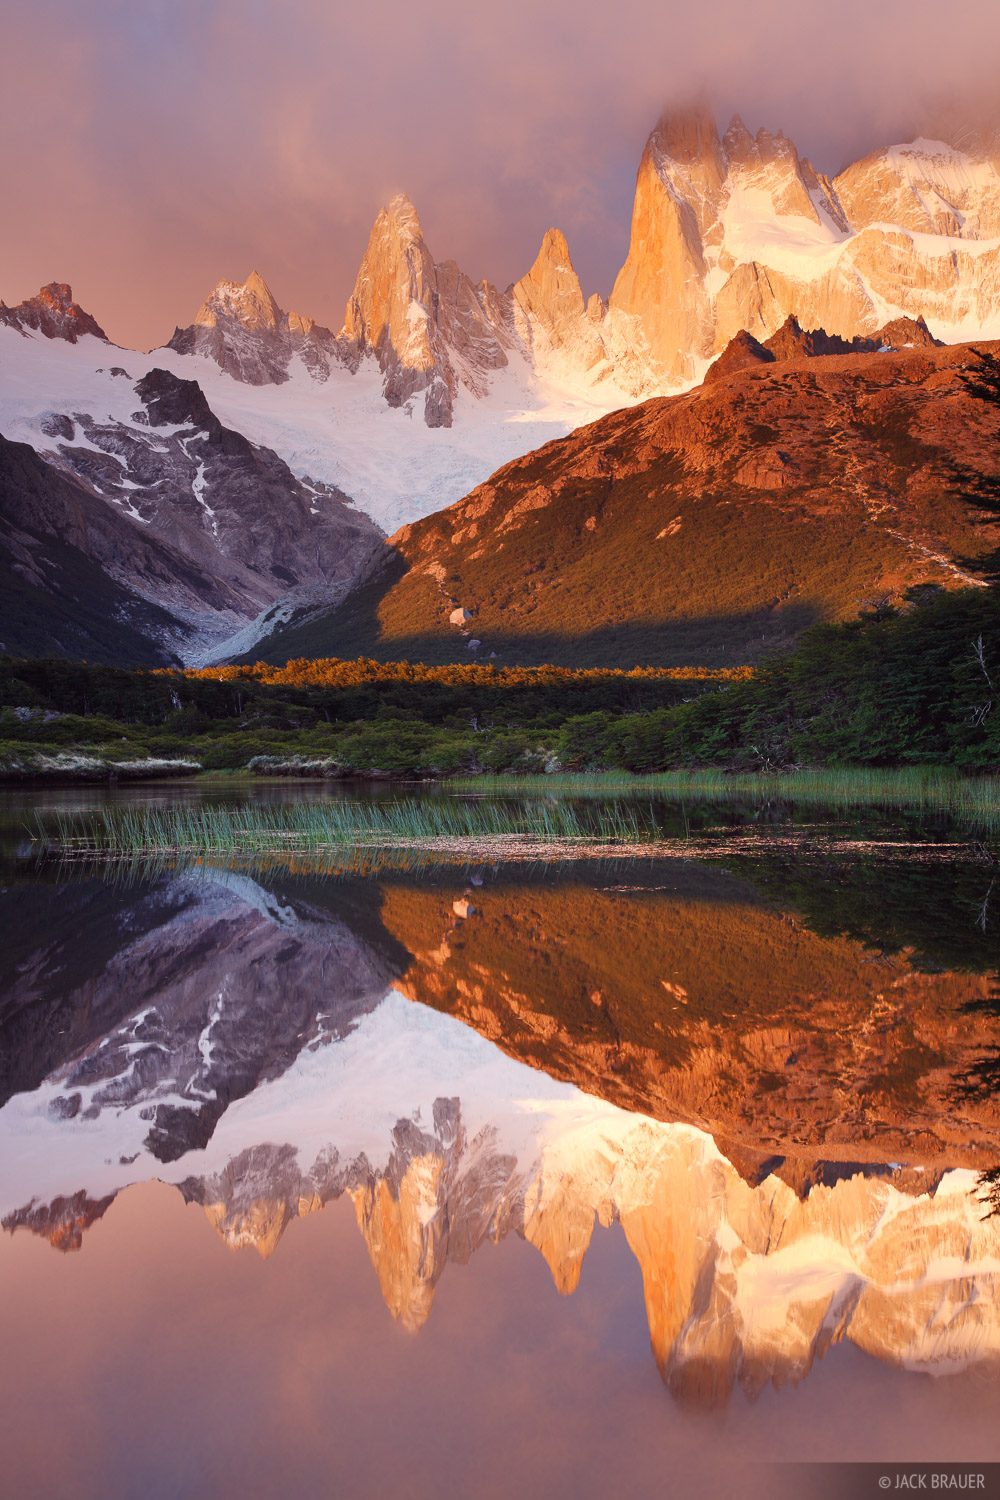 Cerro Poincenot reflects in a small pond at sunrise - December.